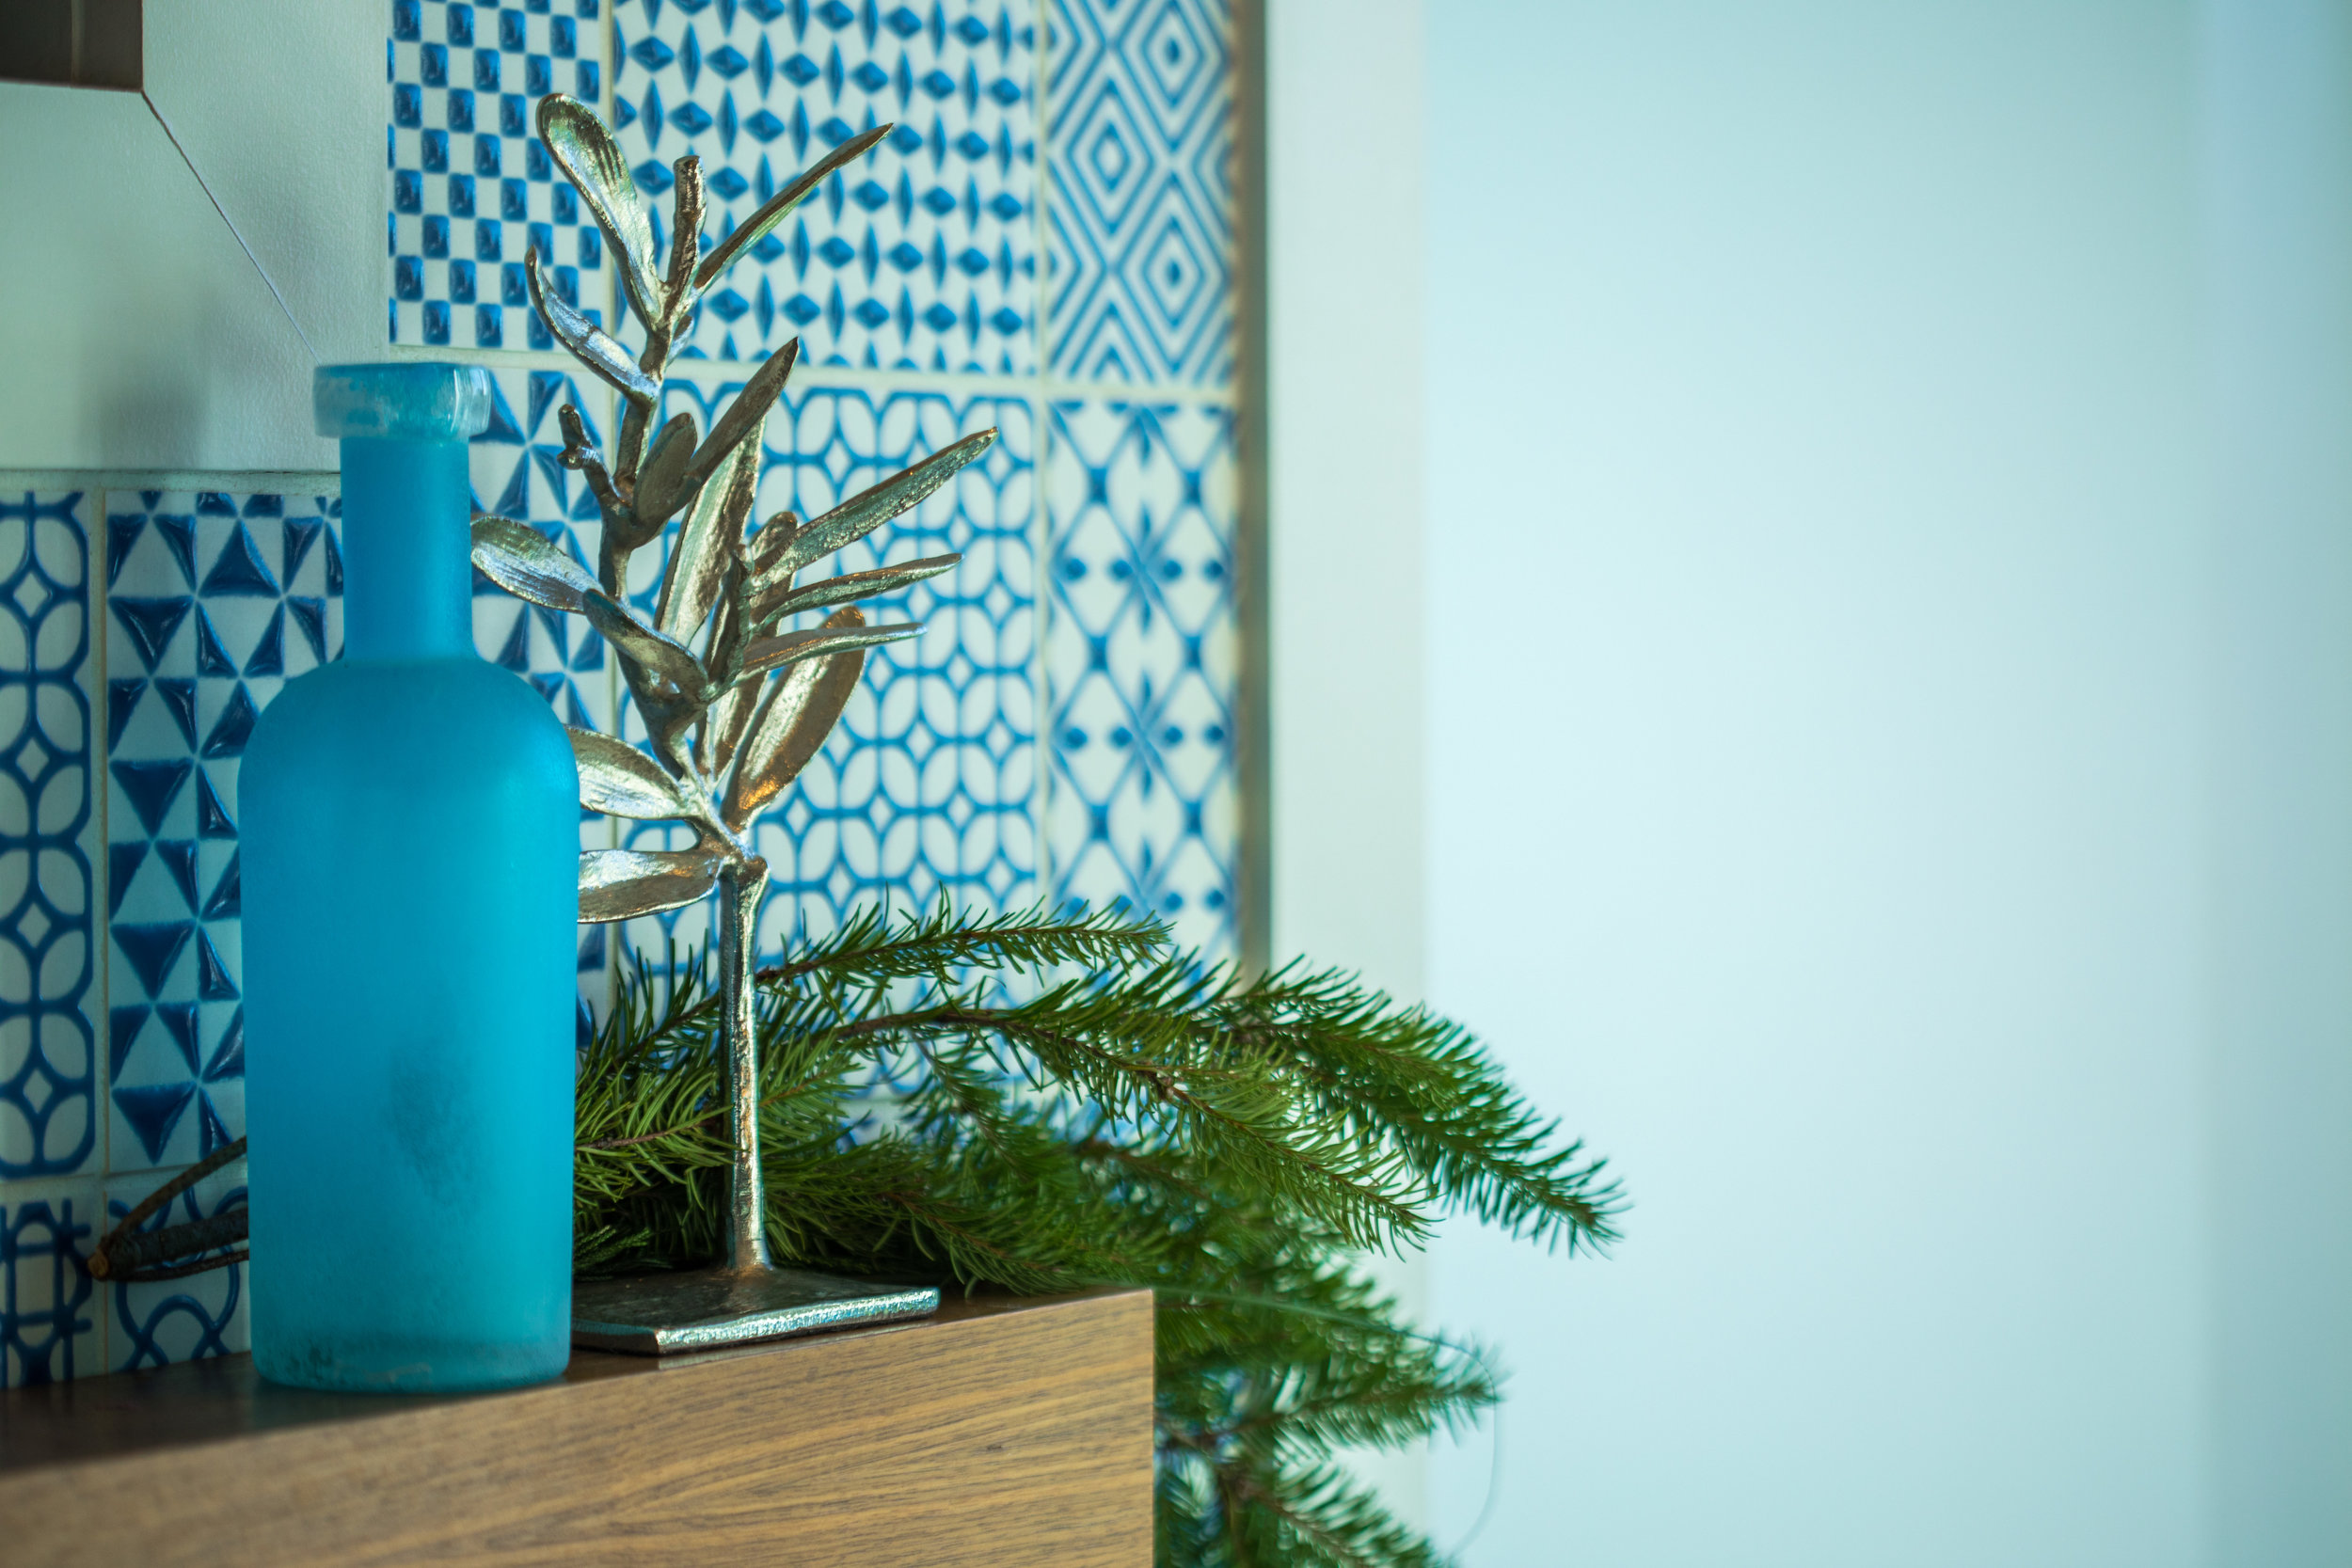 Add a little Greenery! - Subtle decor is sometimes the best decor.